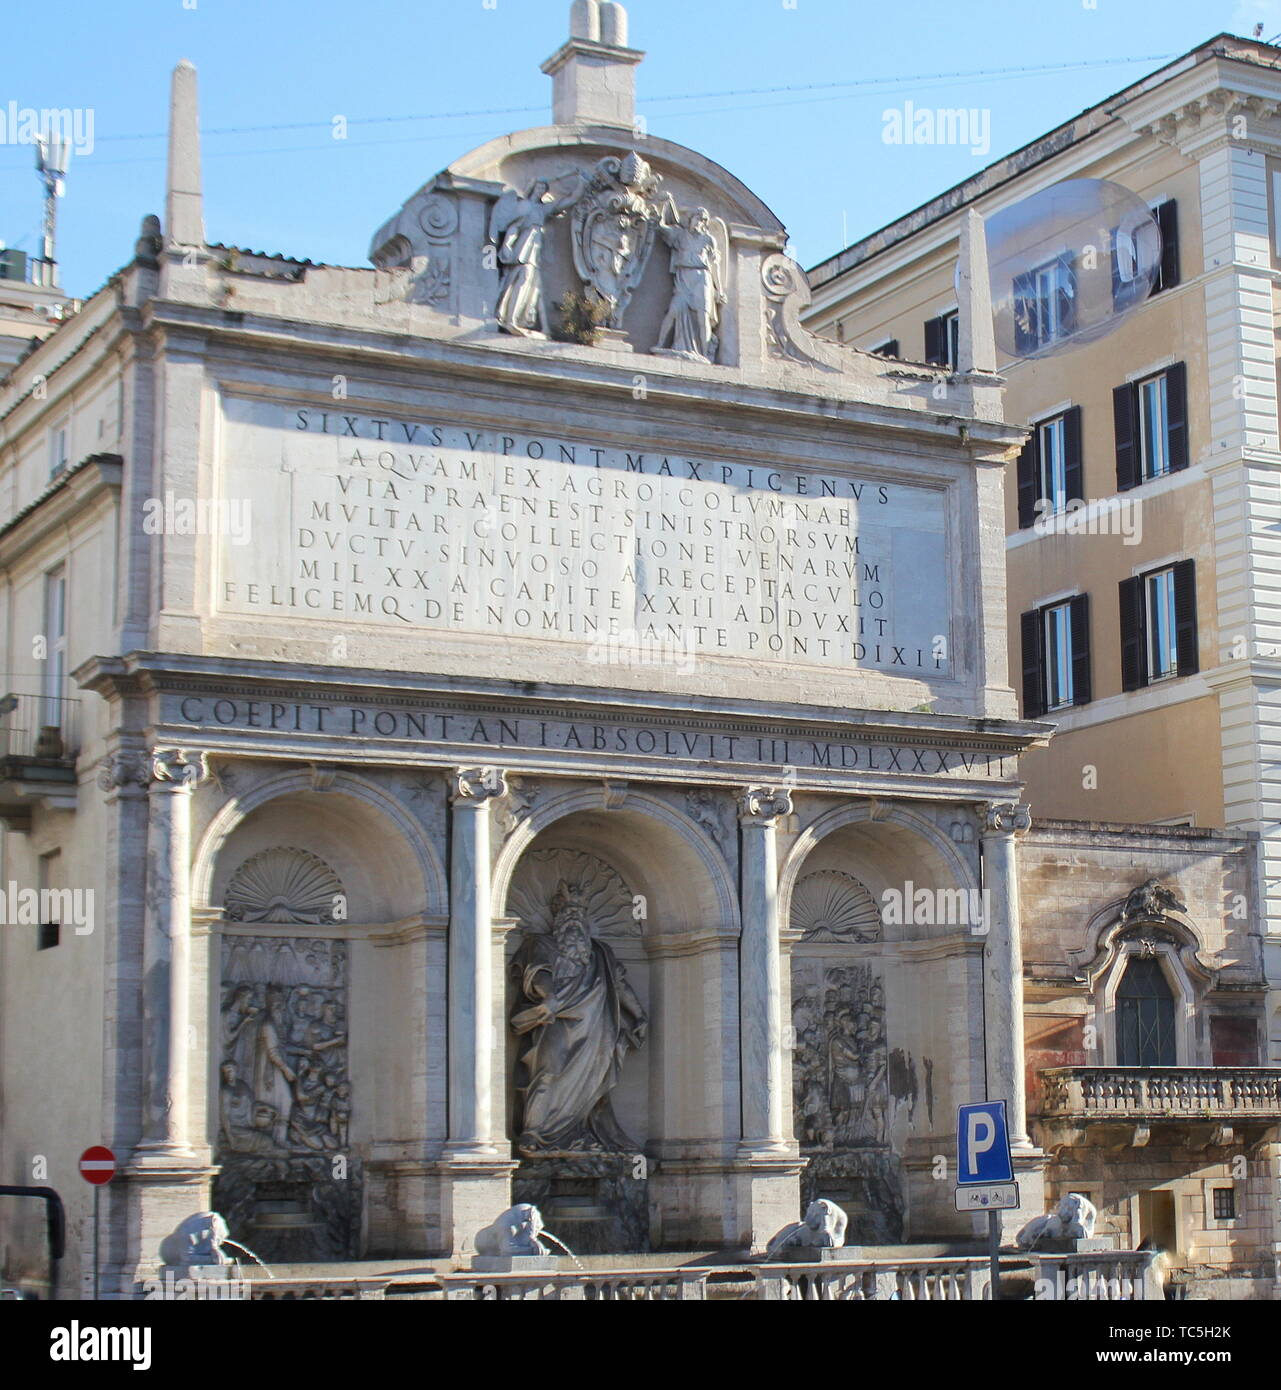 Rome, Italy-December 28 2018 : View of Fountain of Moses (Fountain Acqua Felice) in city of Rome, Italy - Stock Image